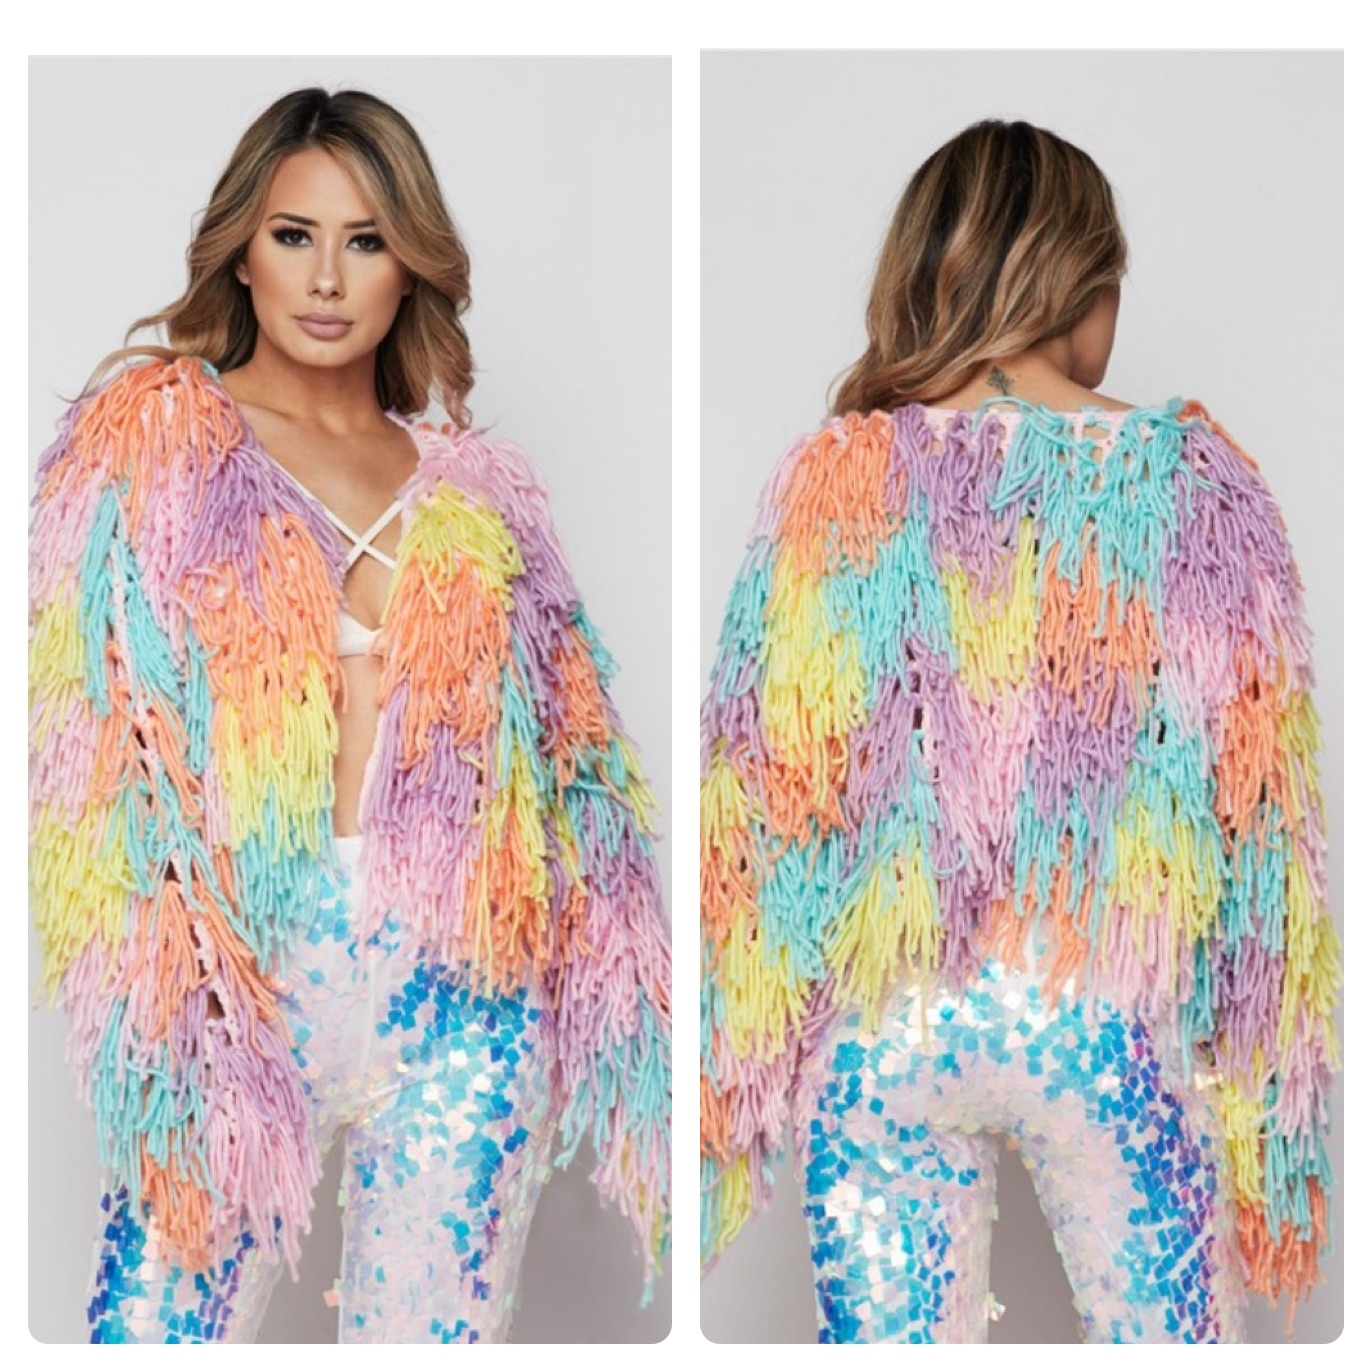 CANDY GIRL COAT  $35